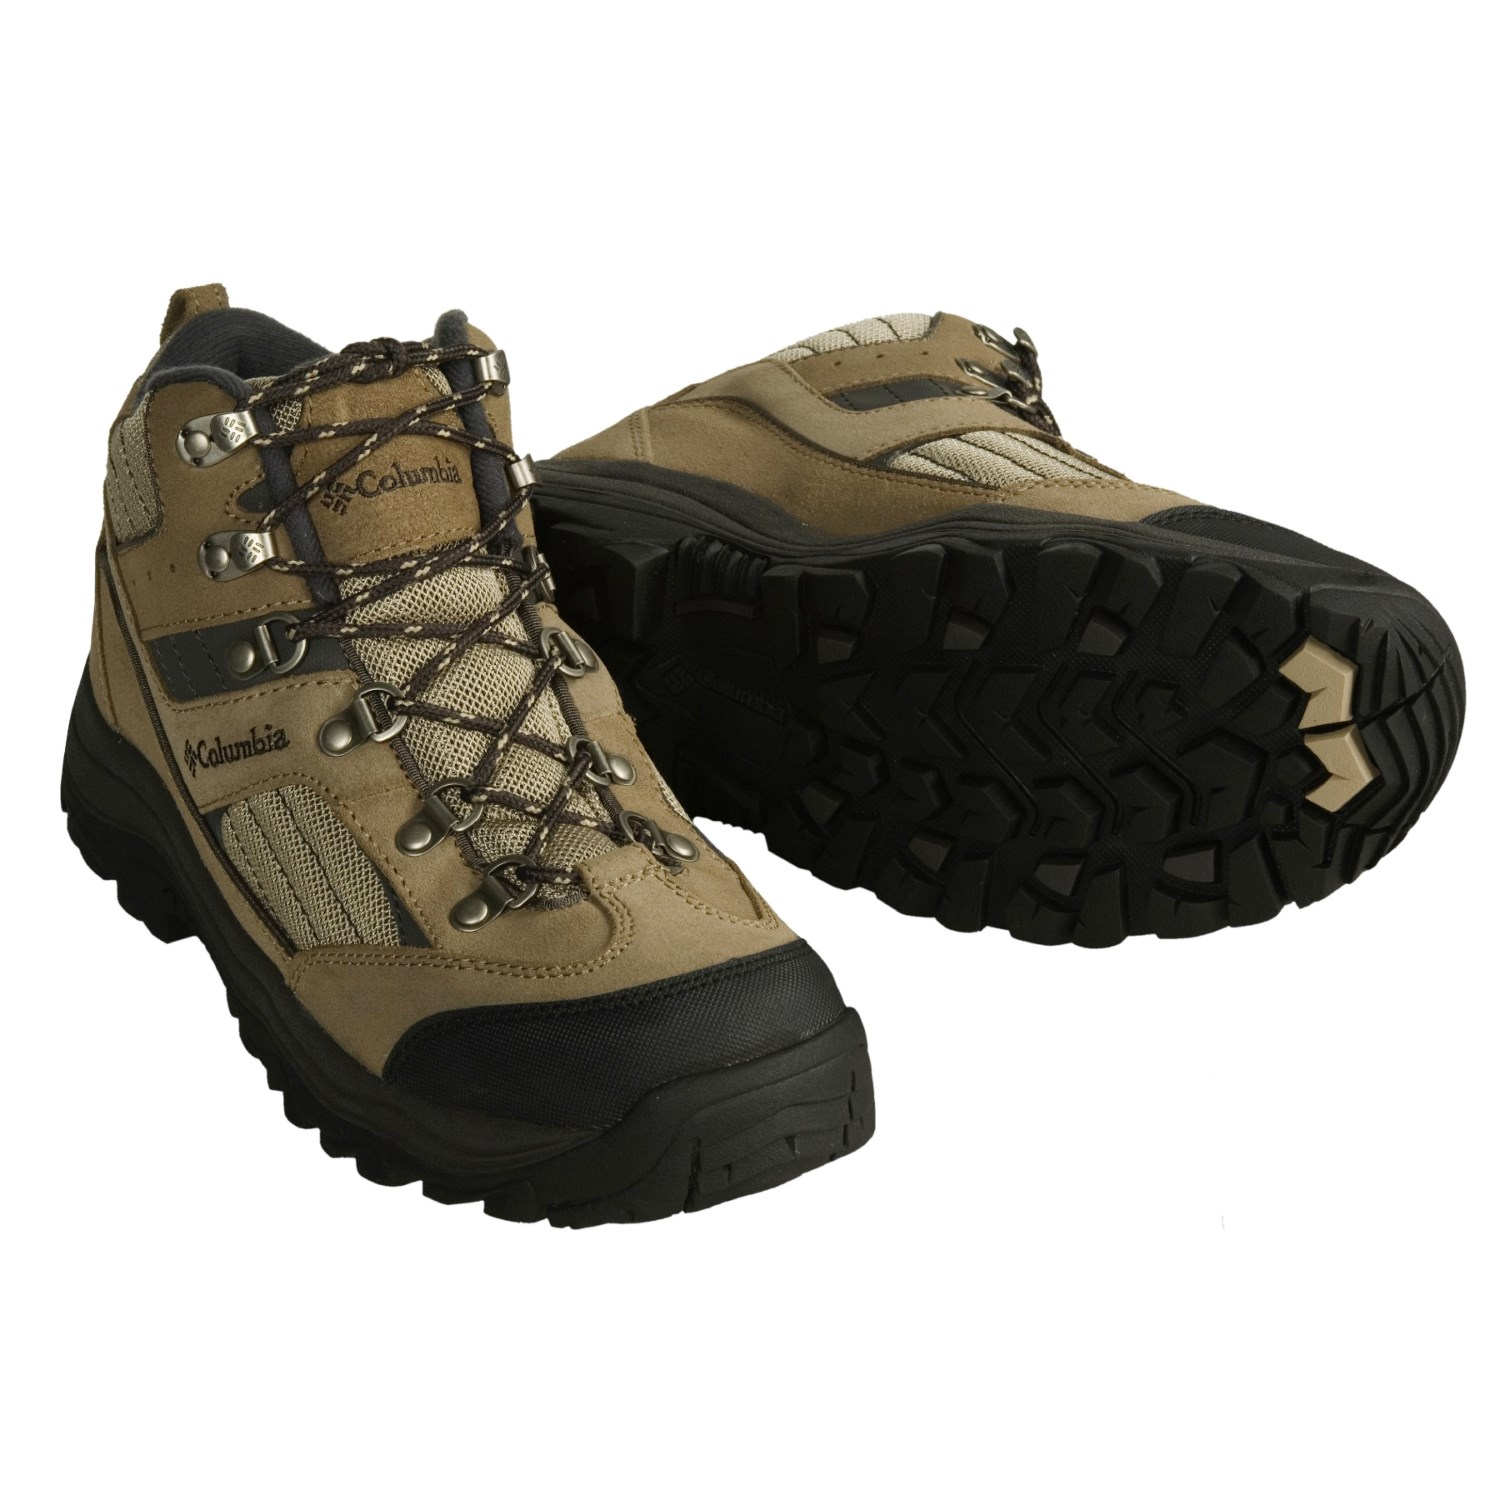 Columbia Footwear Sawtooth Cross Trainer Hiking Shoes (for Women